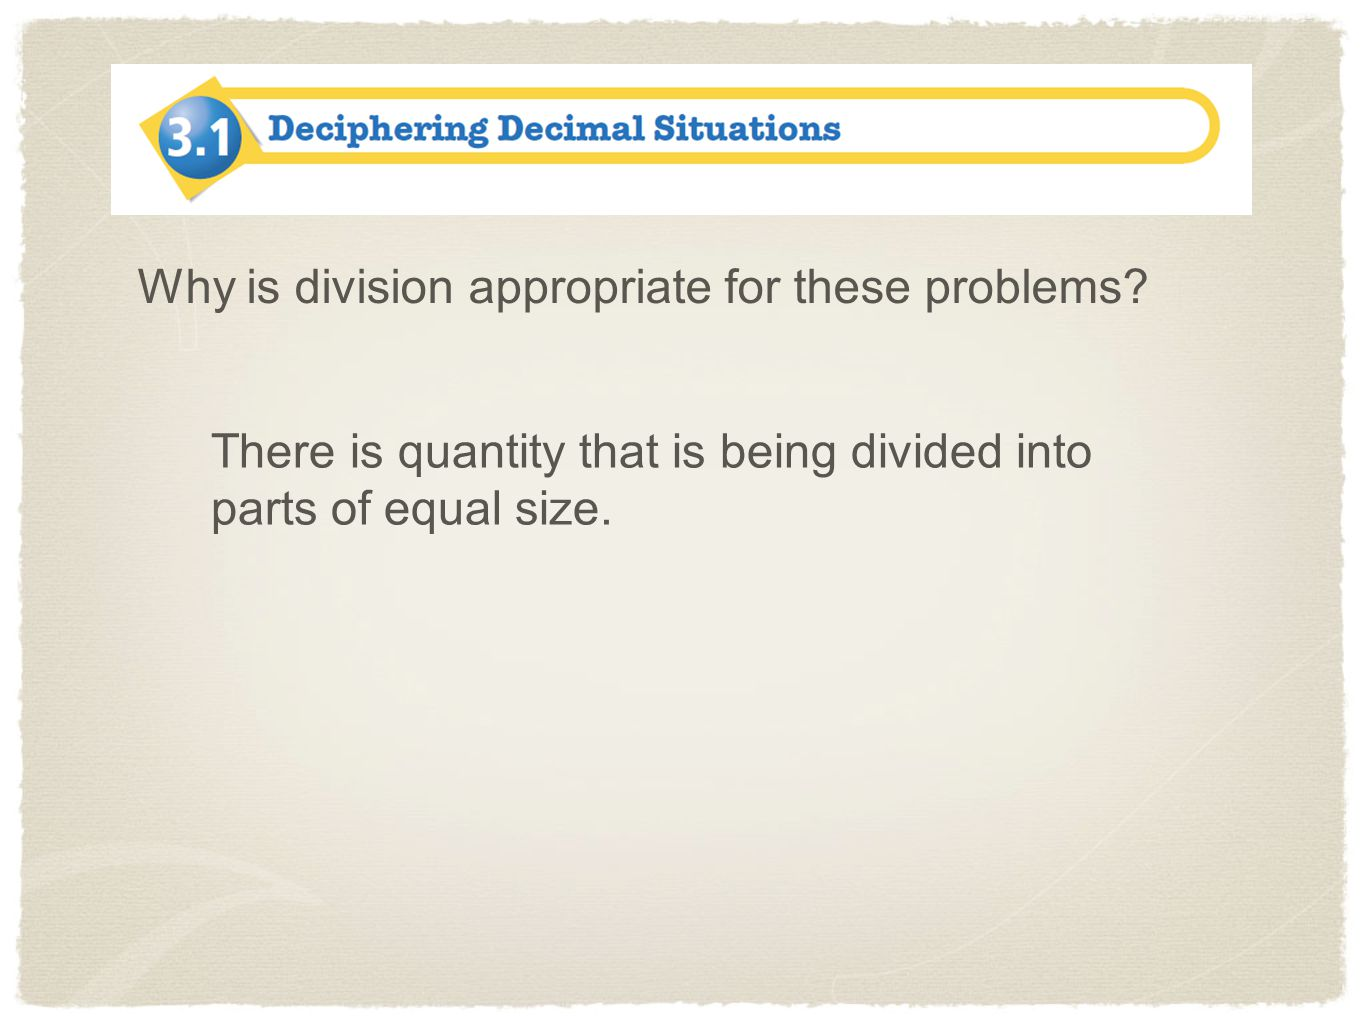 Why is division appropriate for these problems